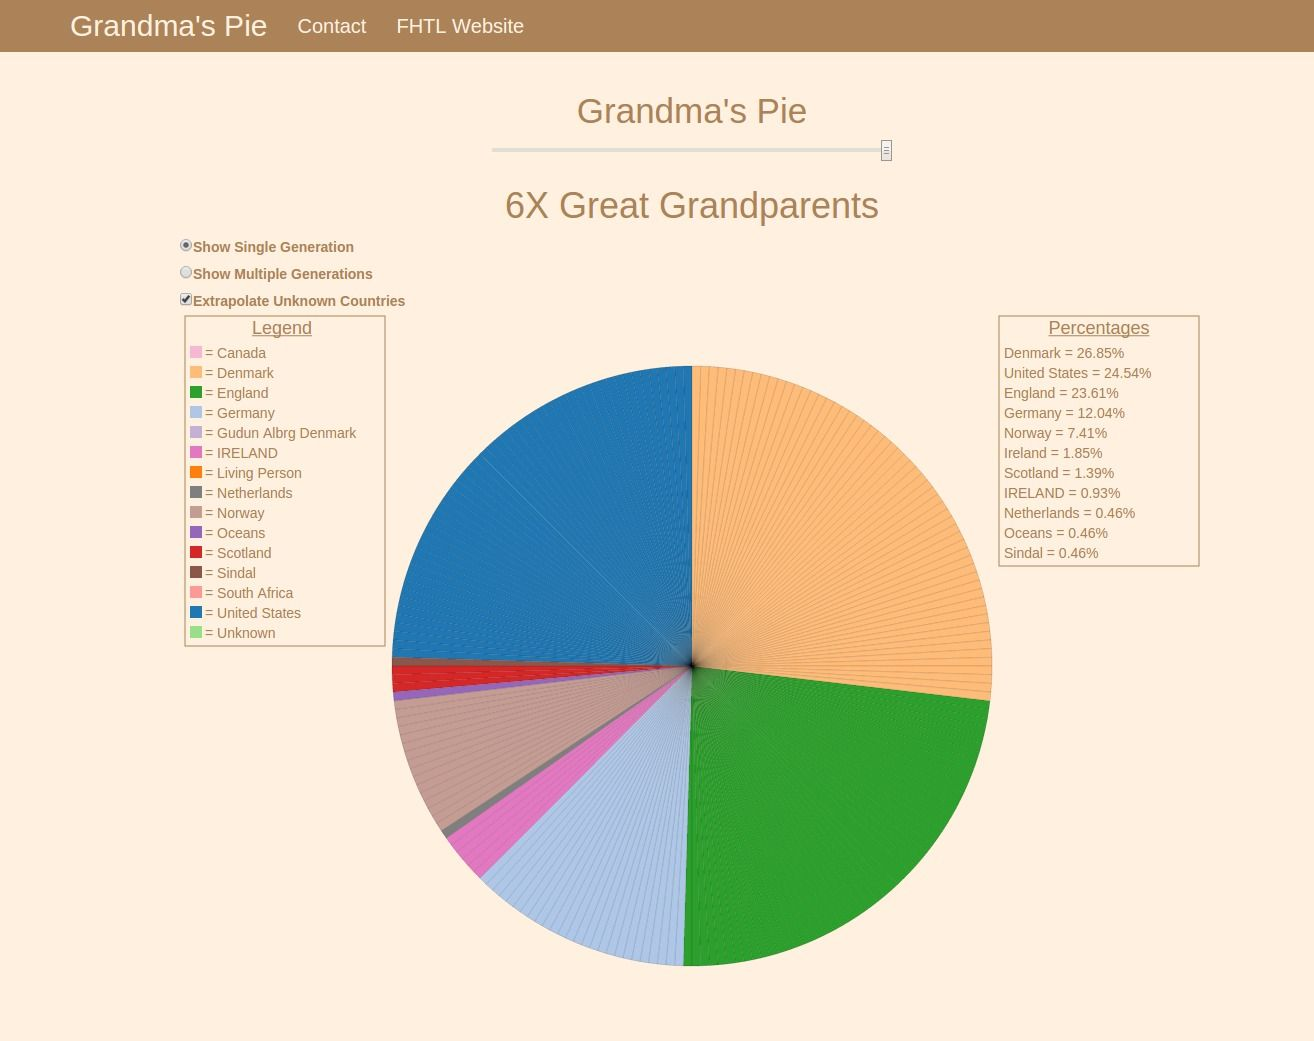 Grandma's Pie is a visualization tool that allows you to see where